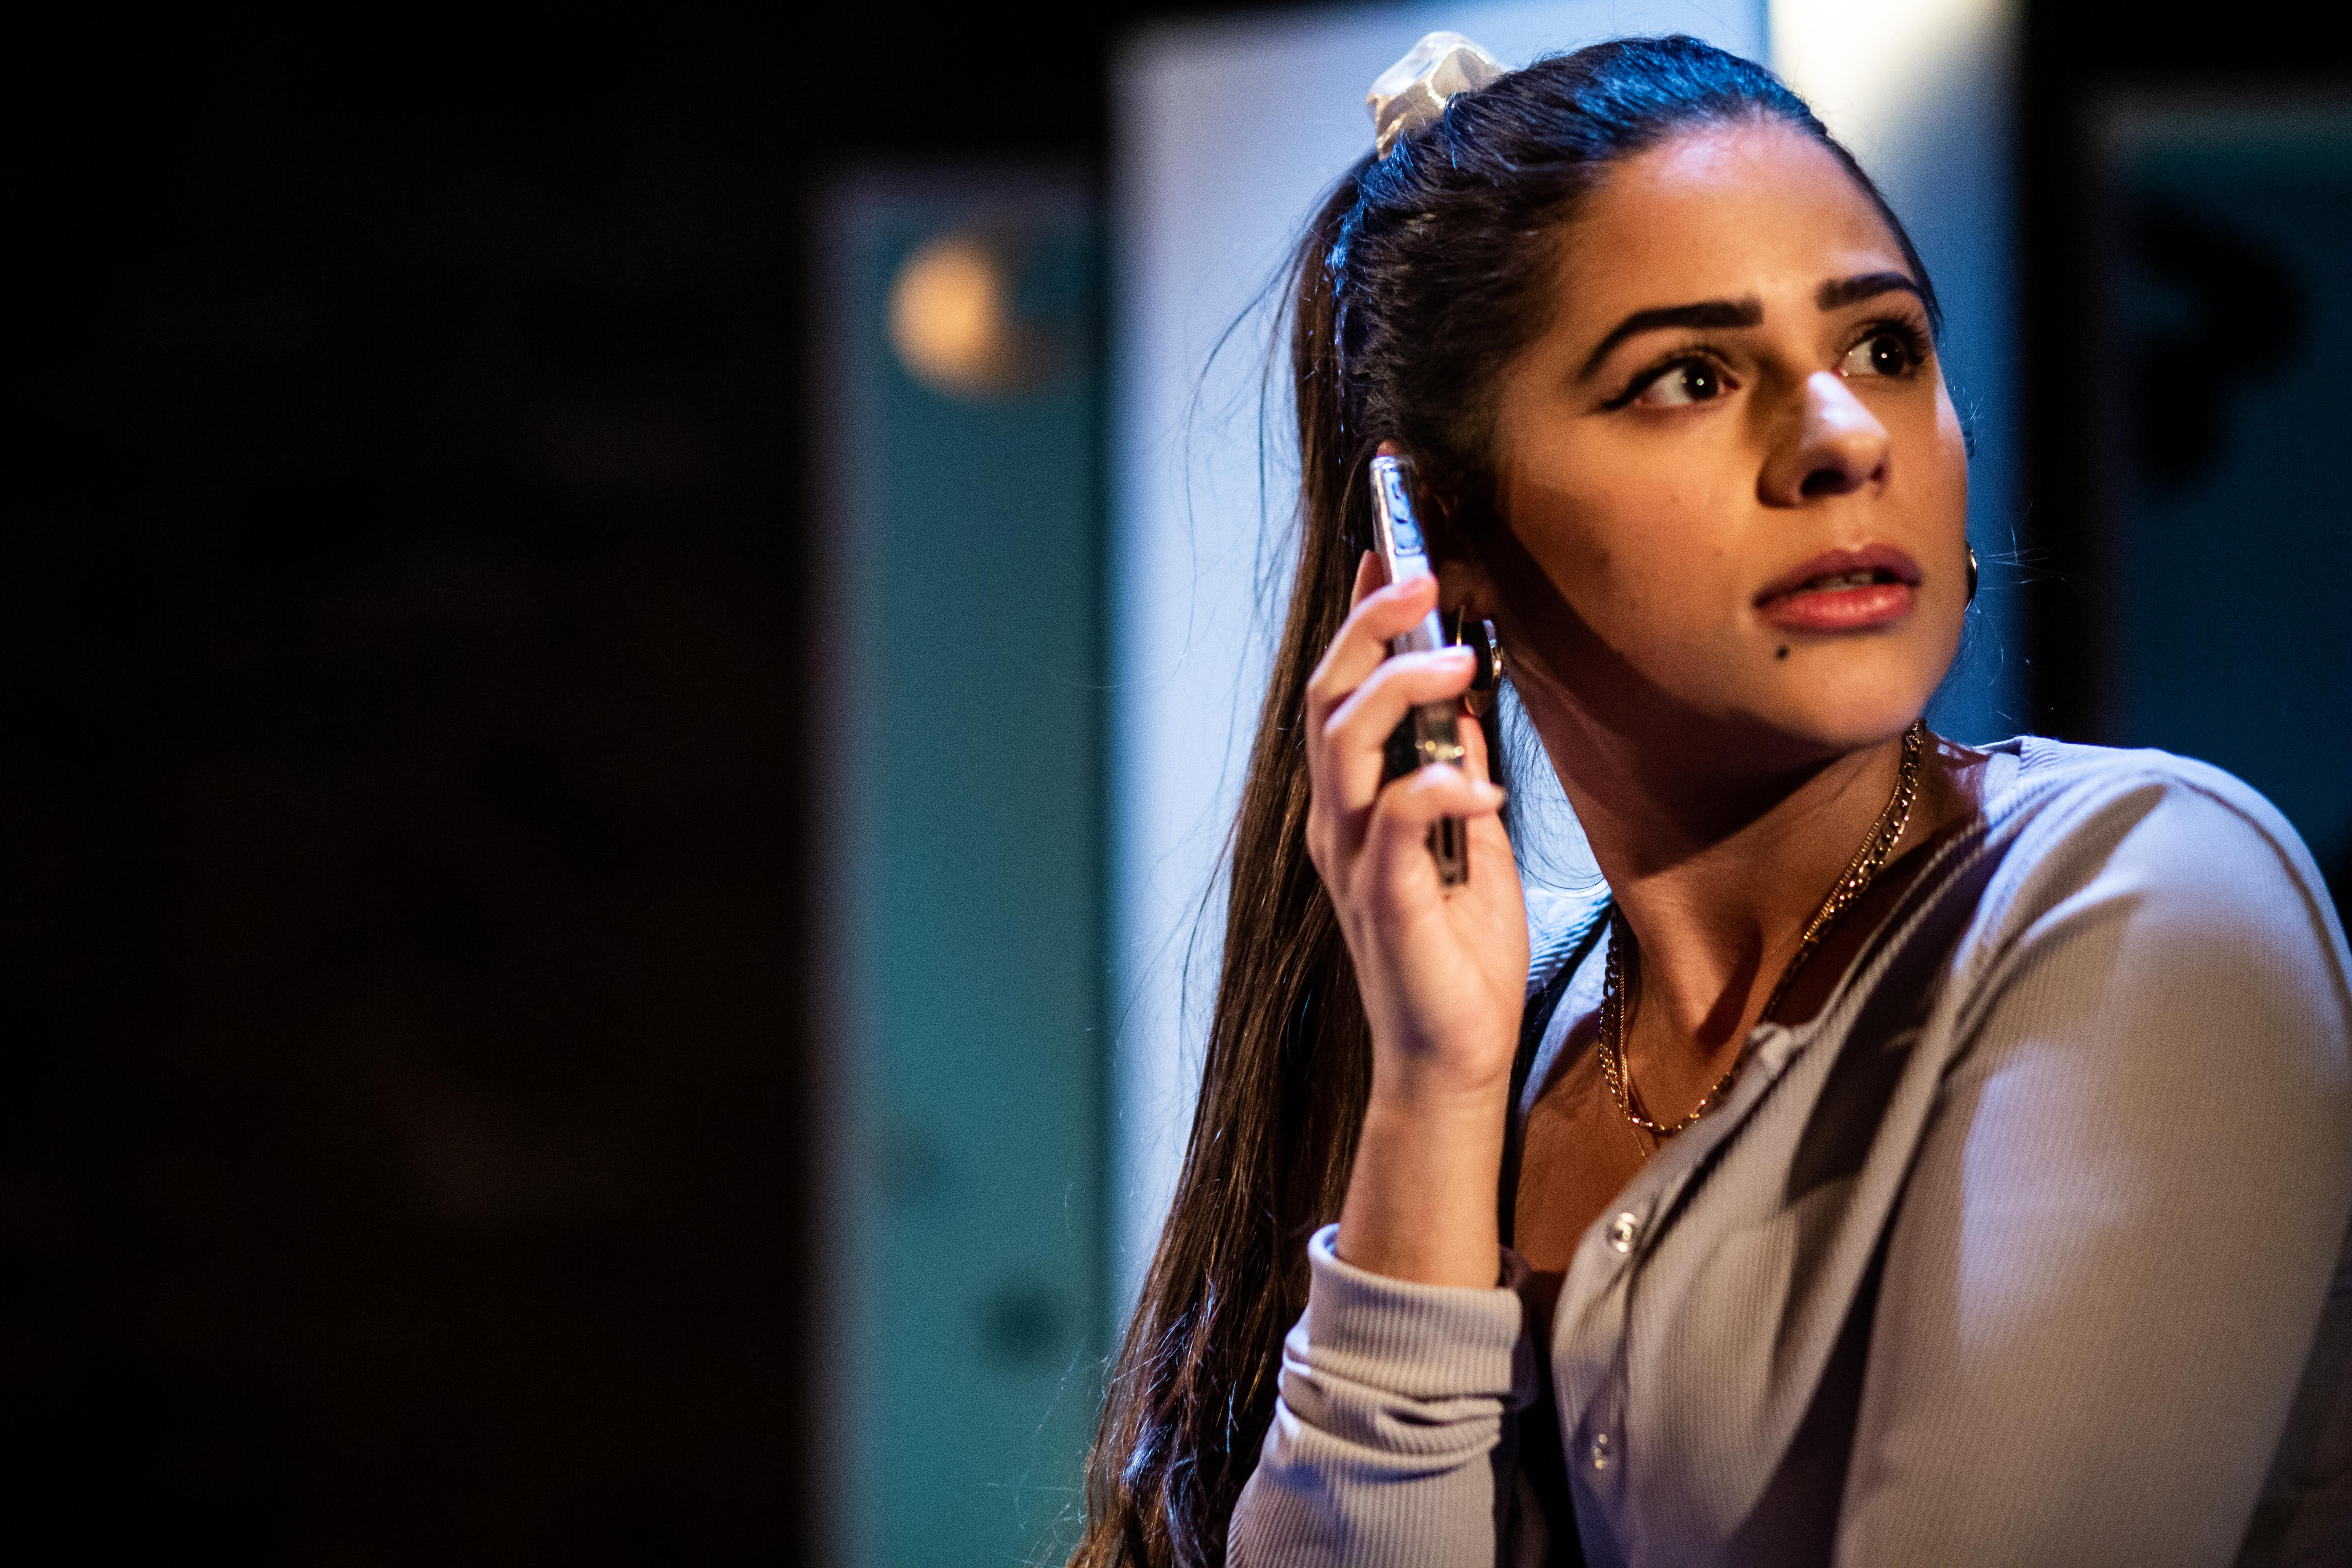 Nyla Levy as Yasmin in Does My Bomb Look Big In This?